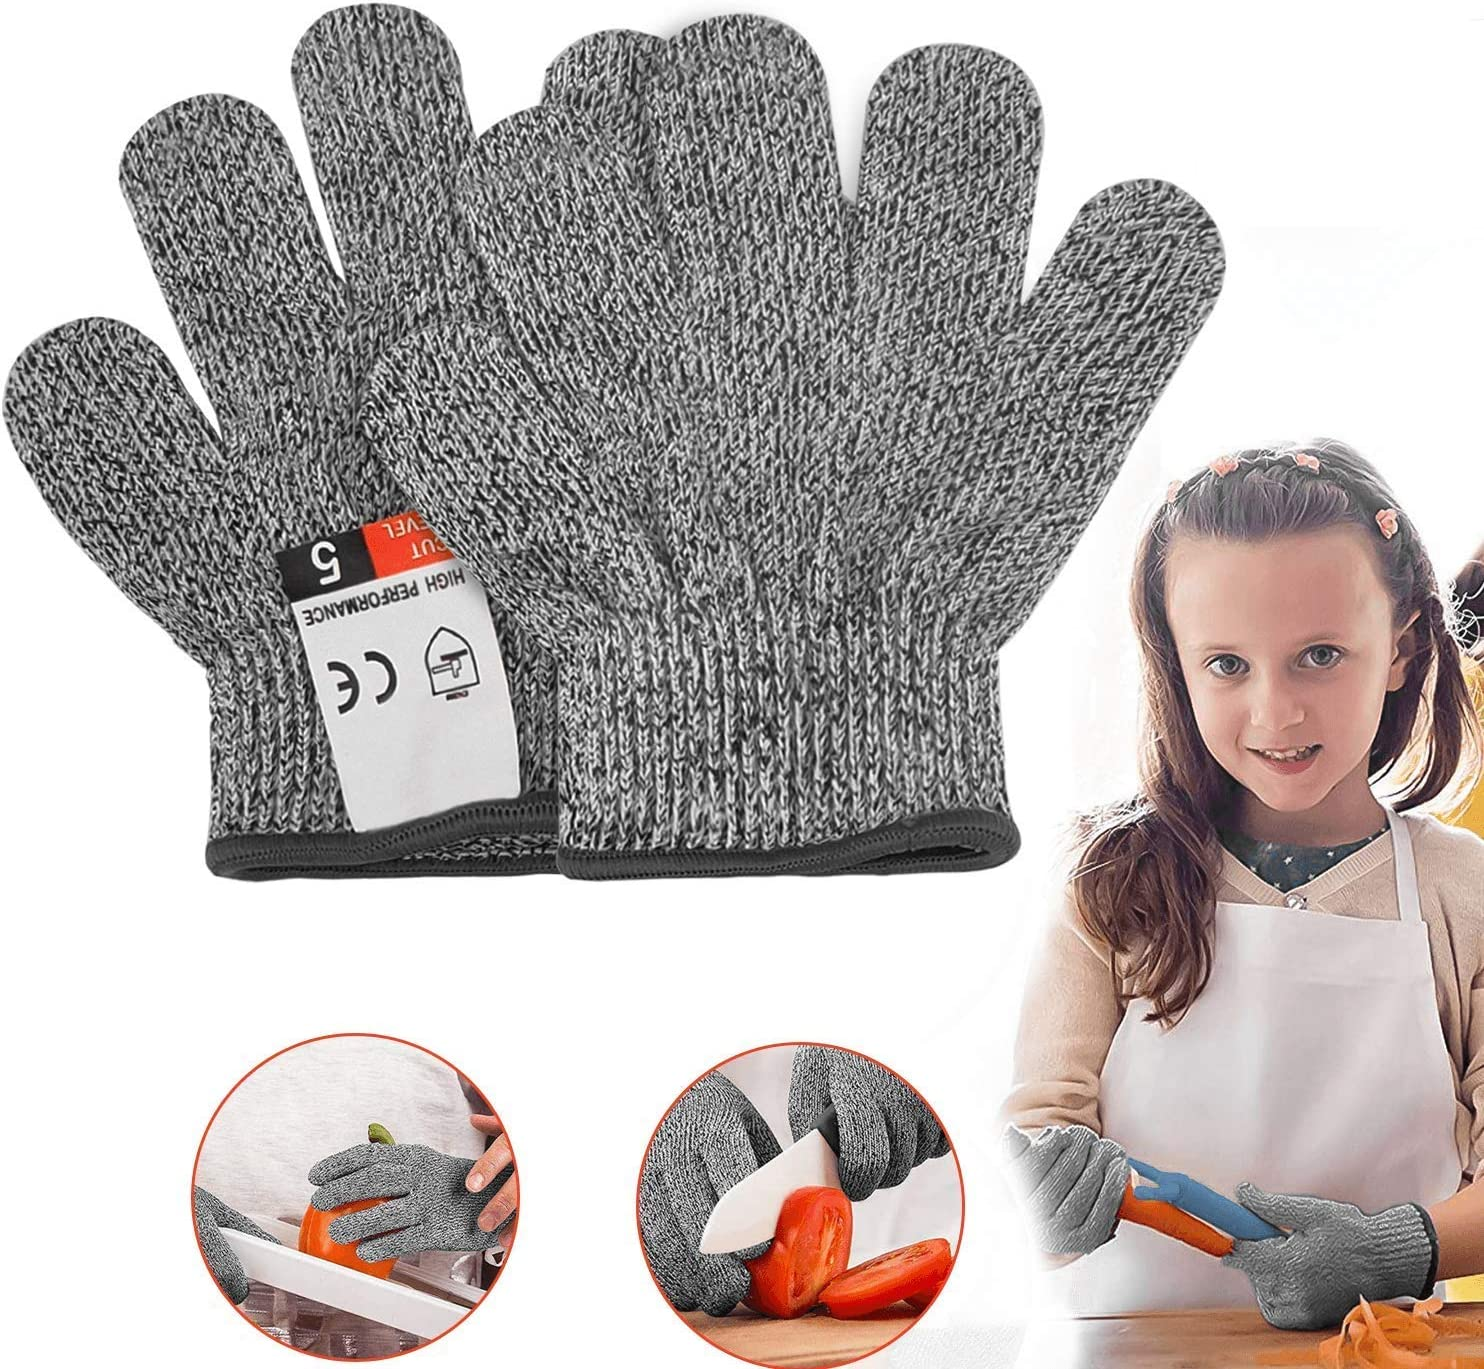 YIUON Cut Resistant Gloves, Safety Kitchen Food Grade Cut-less Gloves for Kitchen, Outdoor Yard Work, Wood Carving Carpentry, Art Work, Craft, Gray, 1 Pair (xxxs)